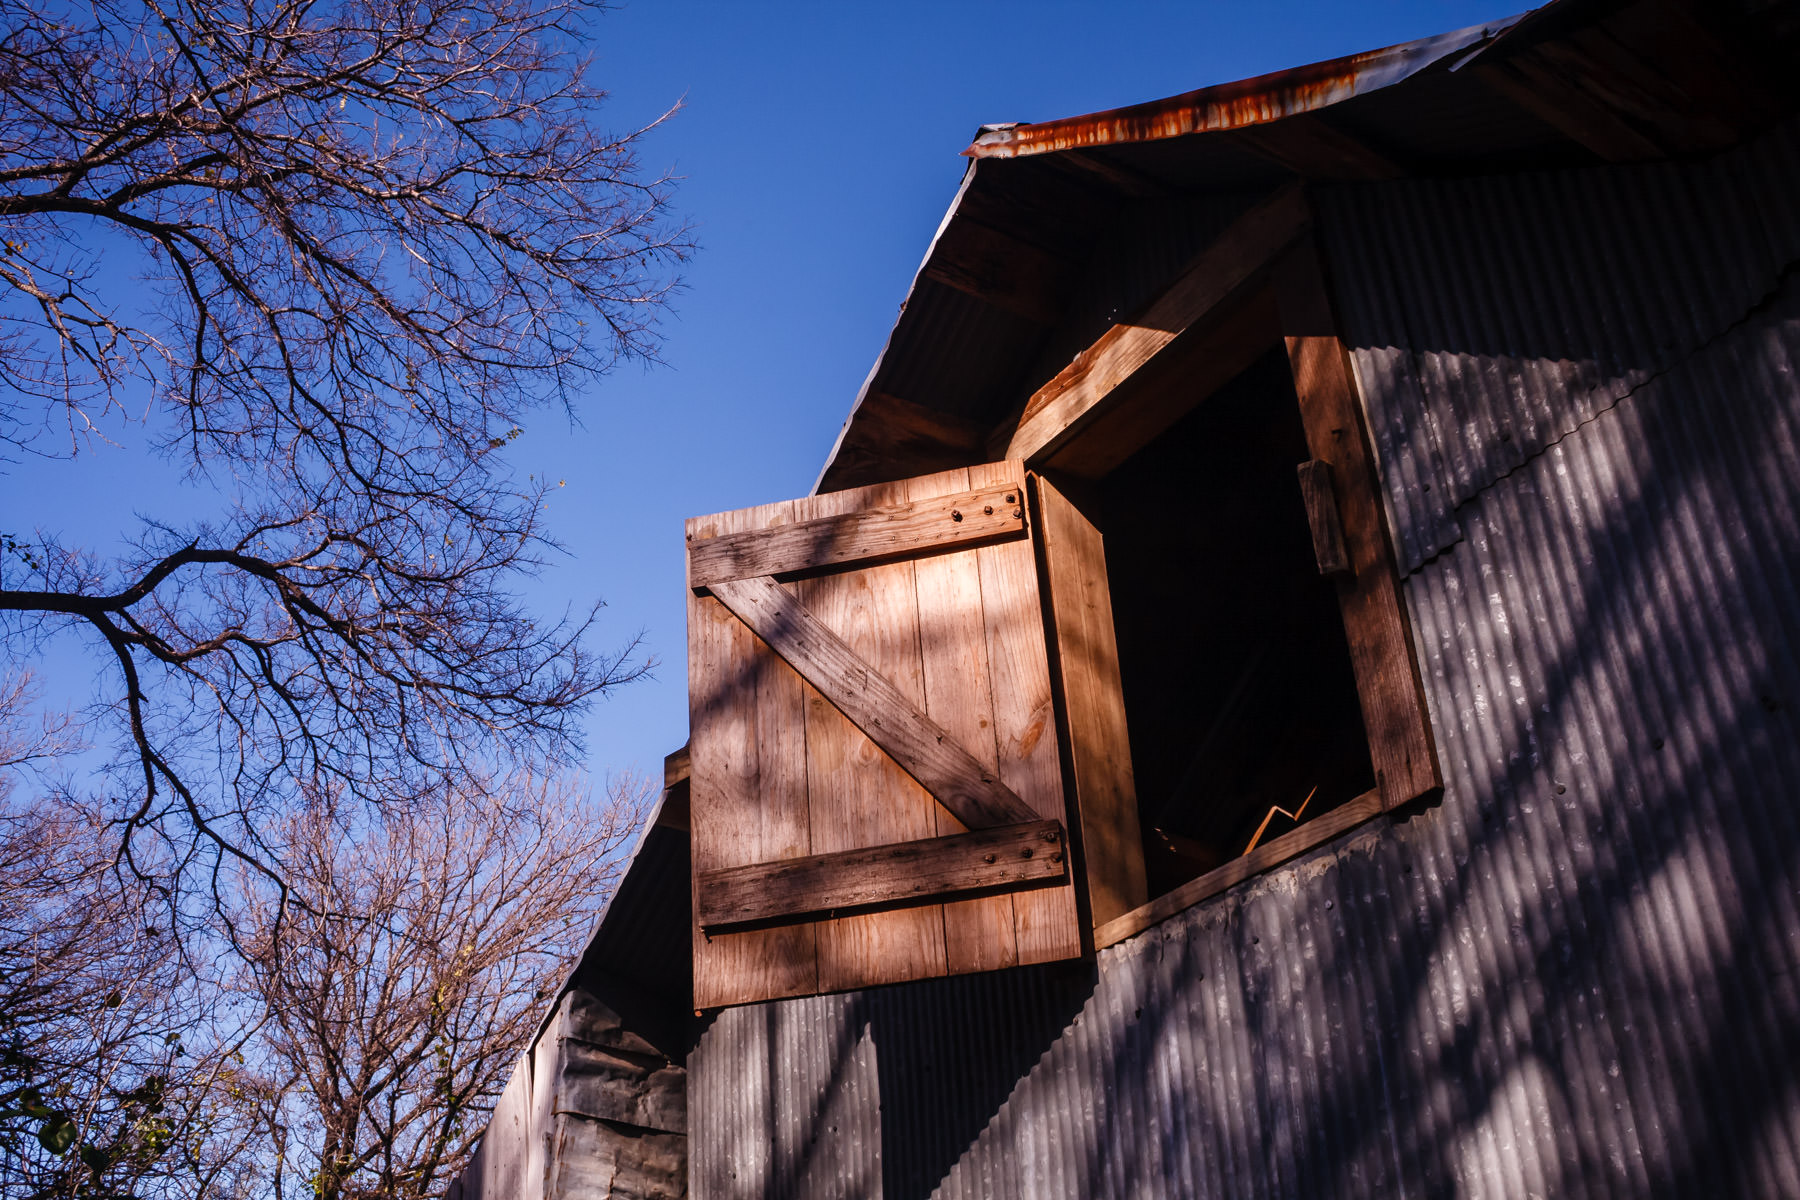 The hayloft door in an old barn at Cedar Hill State Park, Texas.